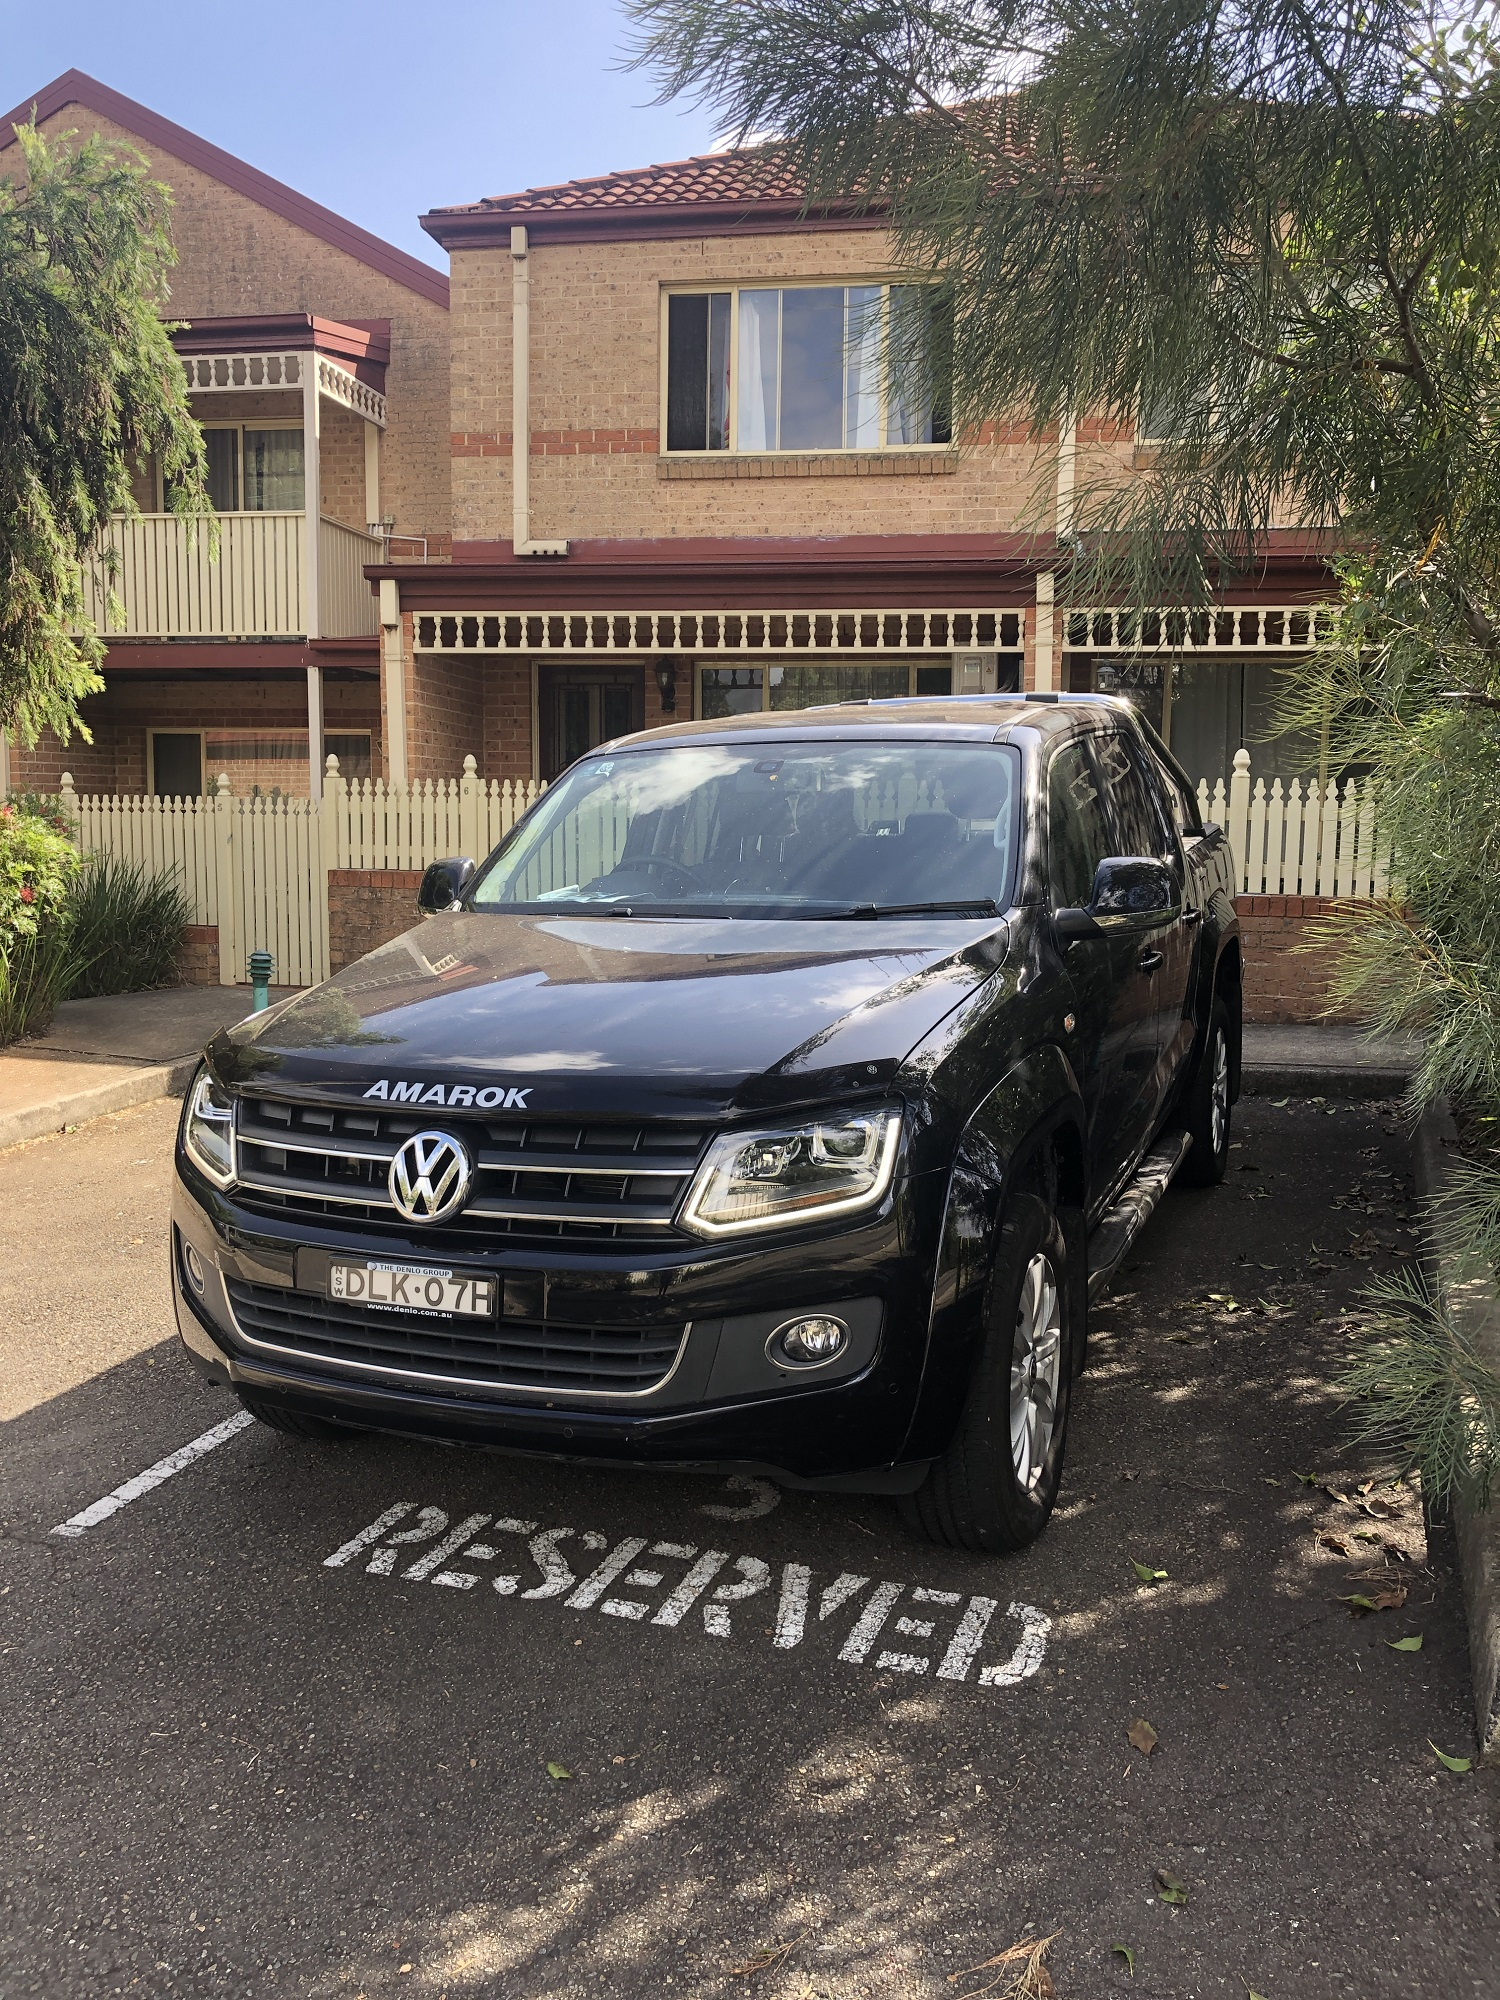 Rent Shaochen's 2017 Volkswagen Amarok by the hour or day in